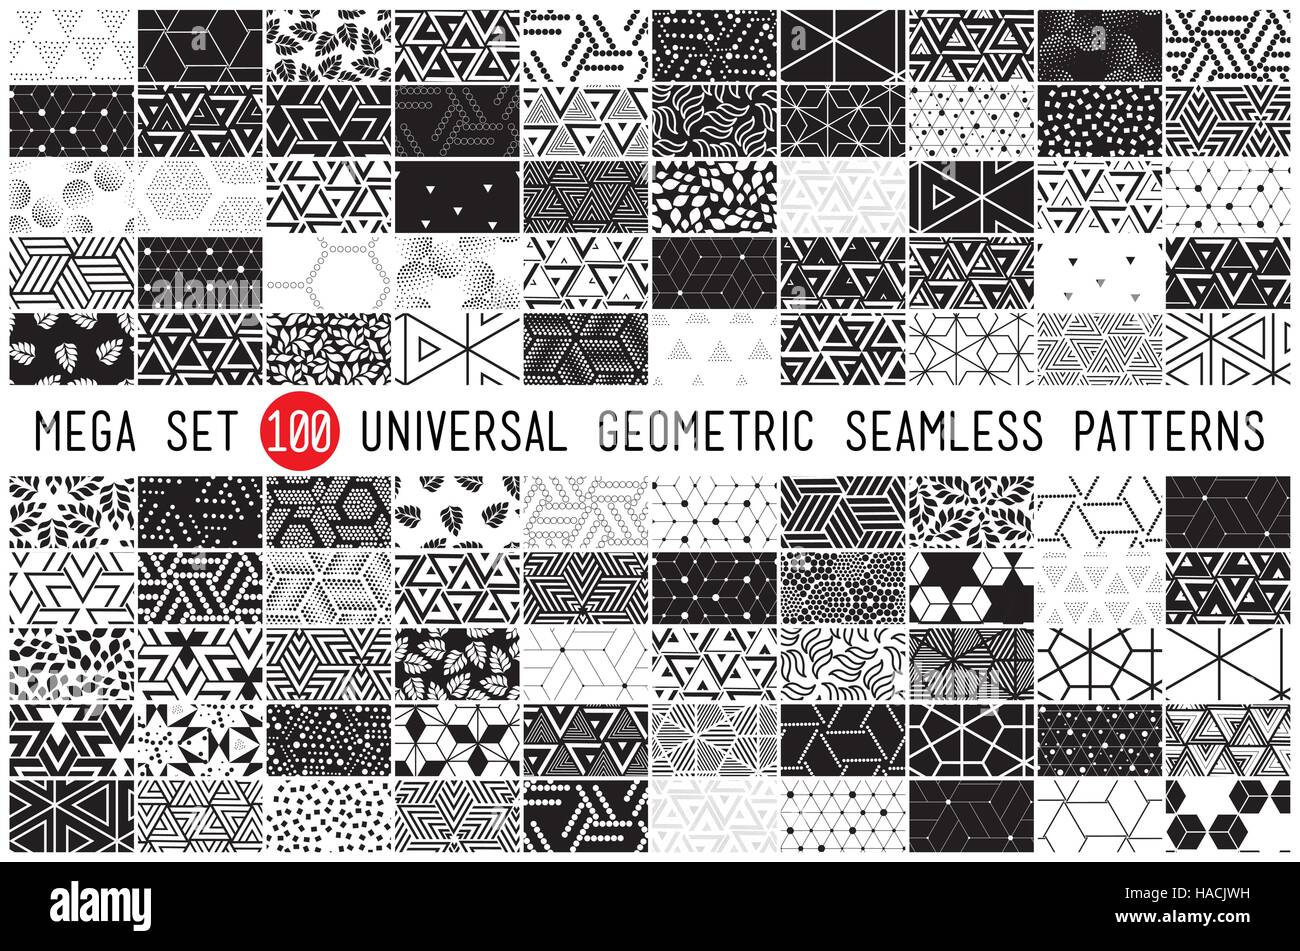 hundred universal different geometric seamless patterns - Stock Vector